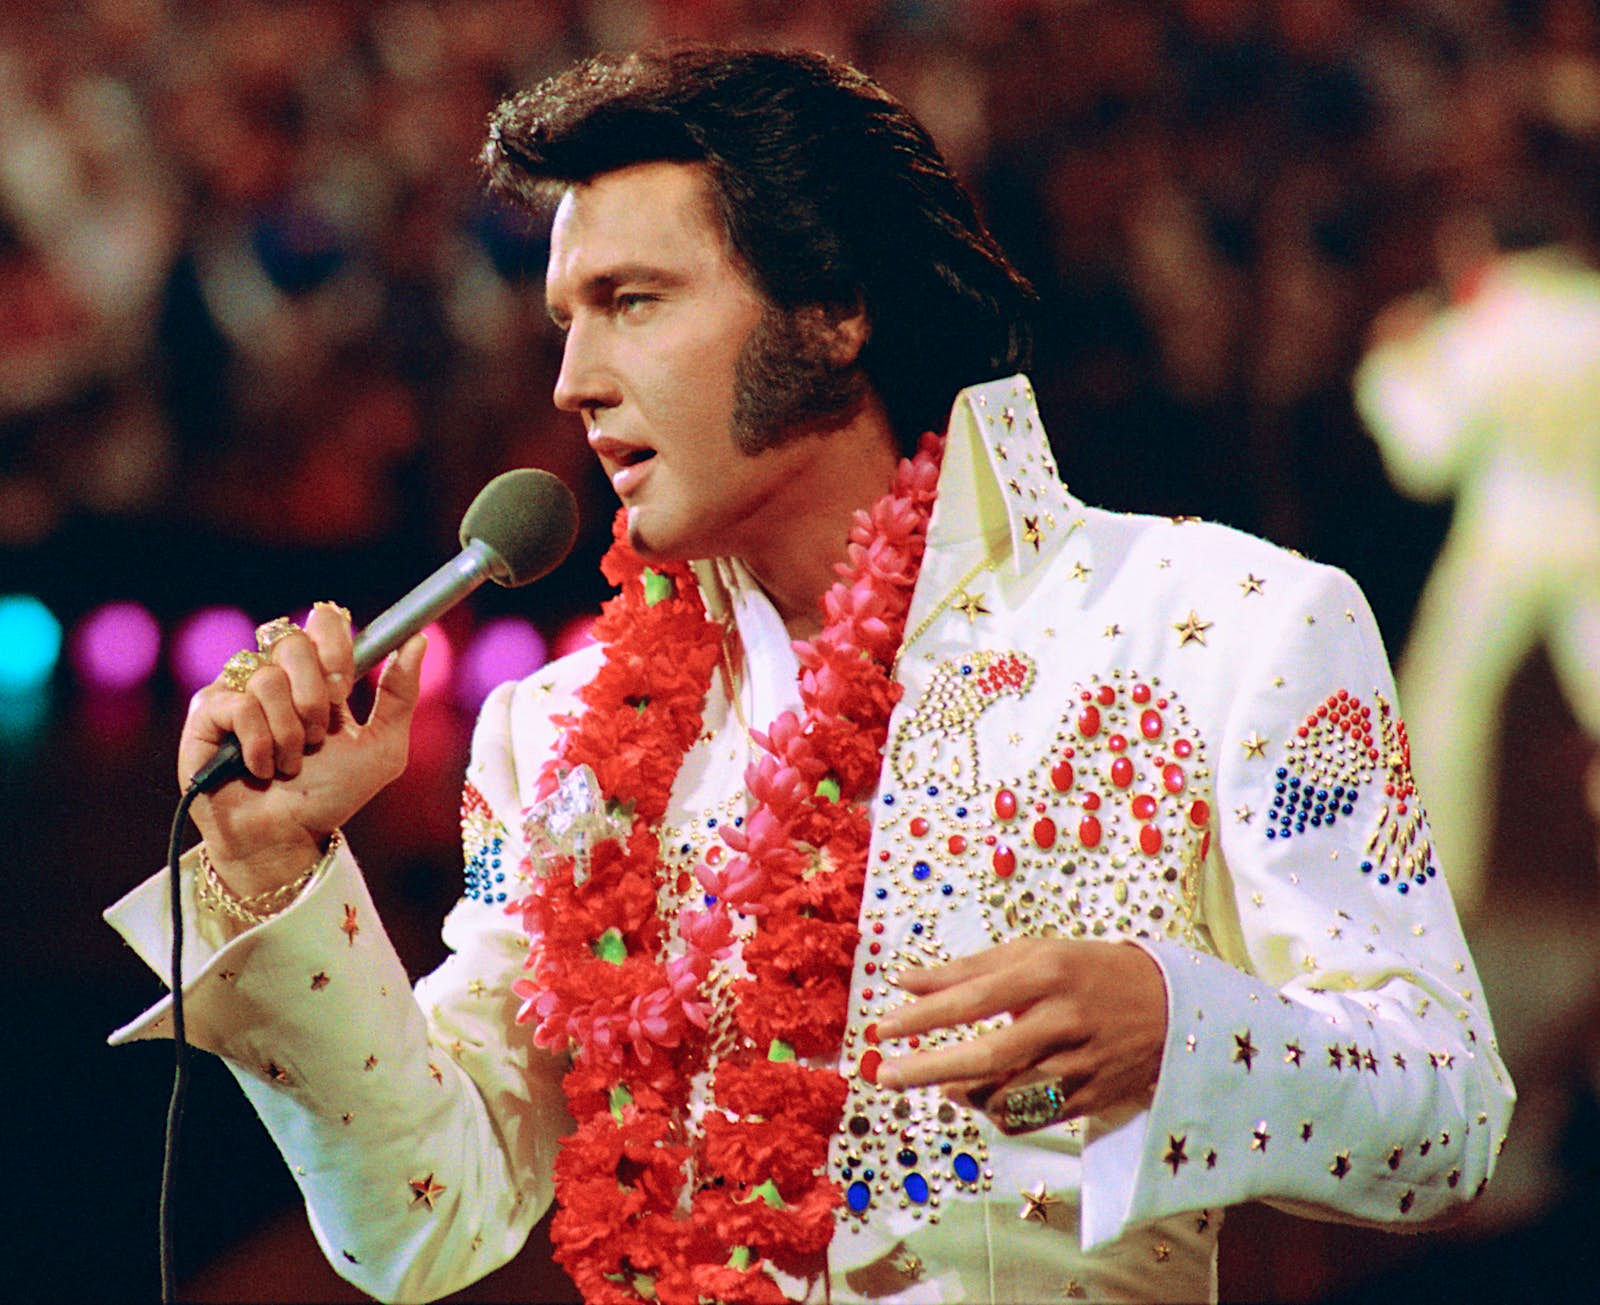 Elvis Presley wearing a lei over a white pants suit decorated with red and blue gems and golden stars. He's holding a microphone